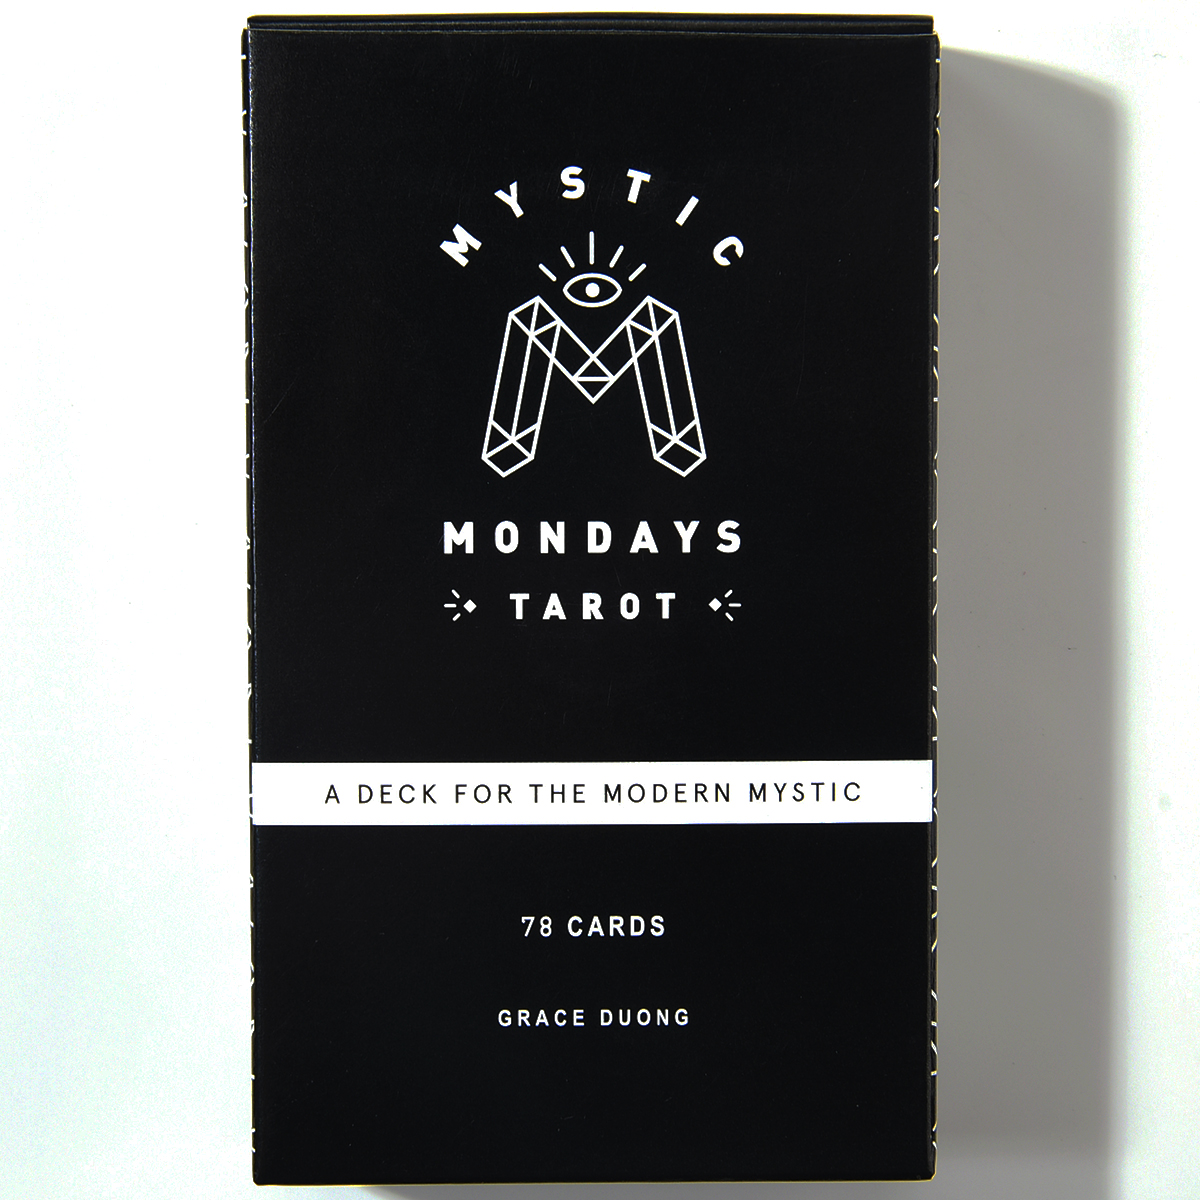 Mystic Mondays Tarot A Deck For The Modern Mystic Tarot Cards And E-Guidebook Set Card Game Gifts Arcana Tarot Card Set Divinati